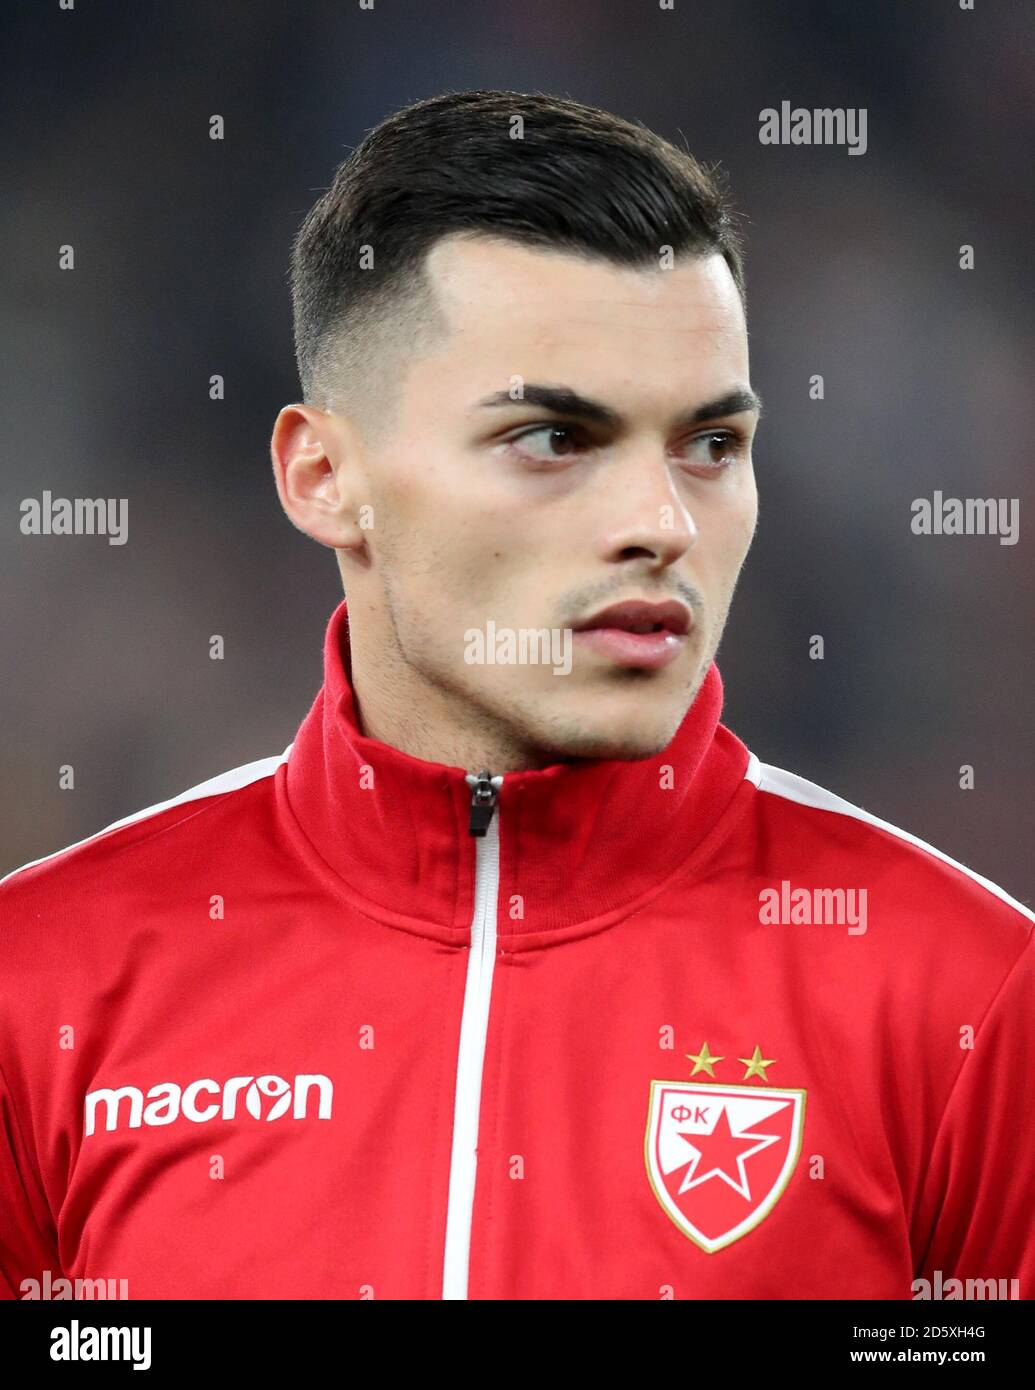 Radonjic High Resolution Stock Photography and Images - Alamy